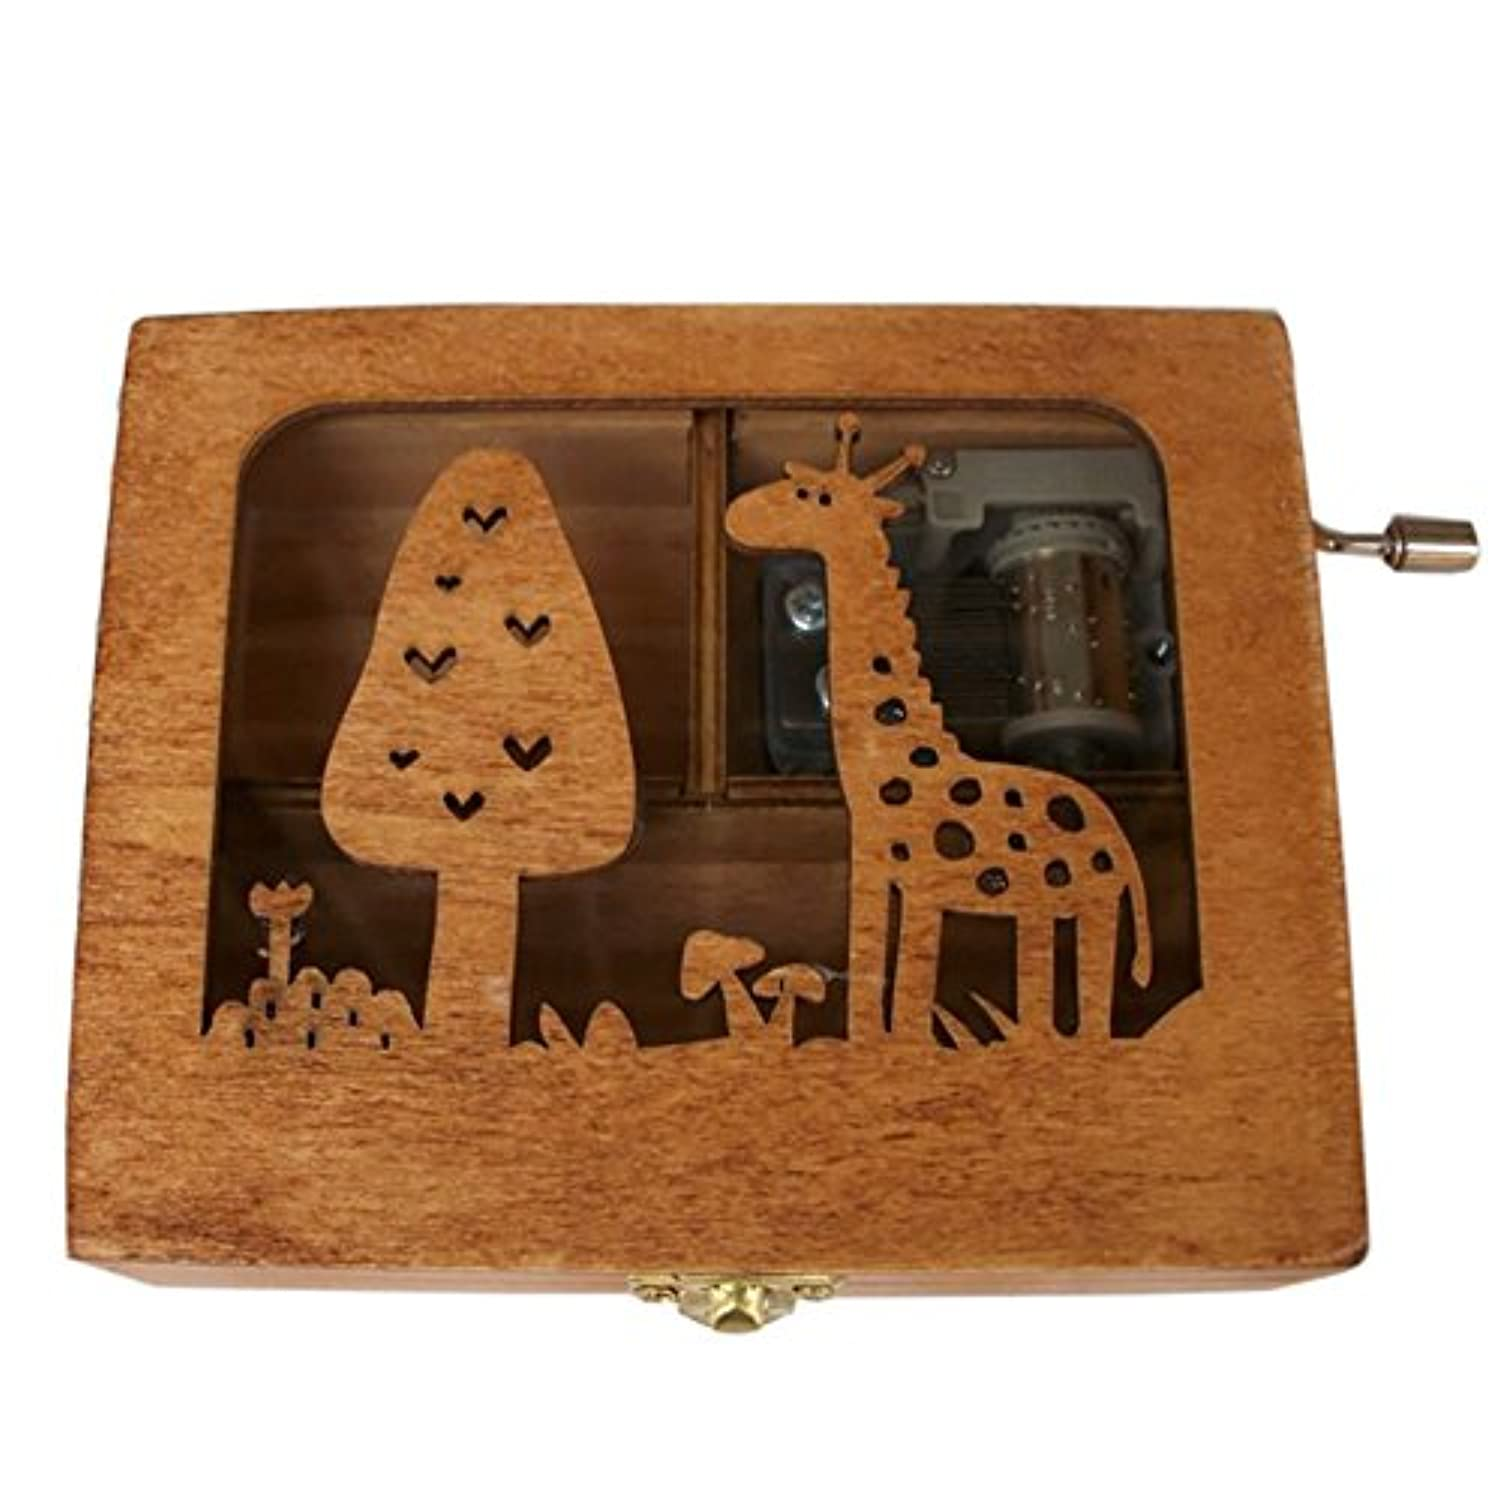 Balai Engraved Wooden Music Box With A Giraffe Engraved On Top Forest Animal Hand Wind Up Mechanism Music Box